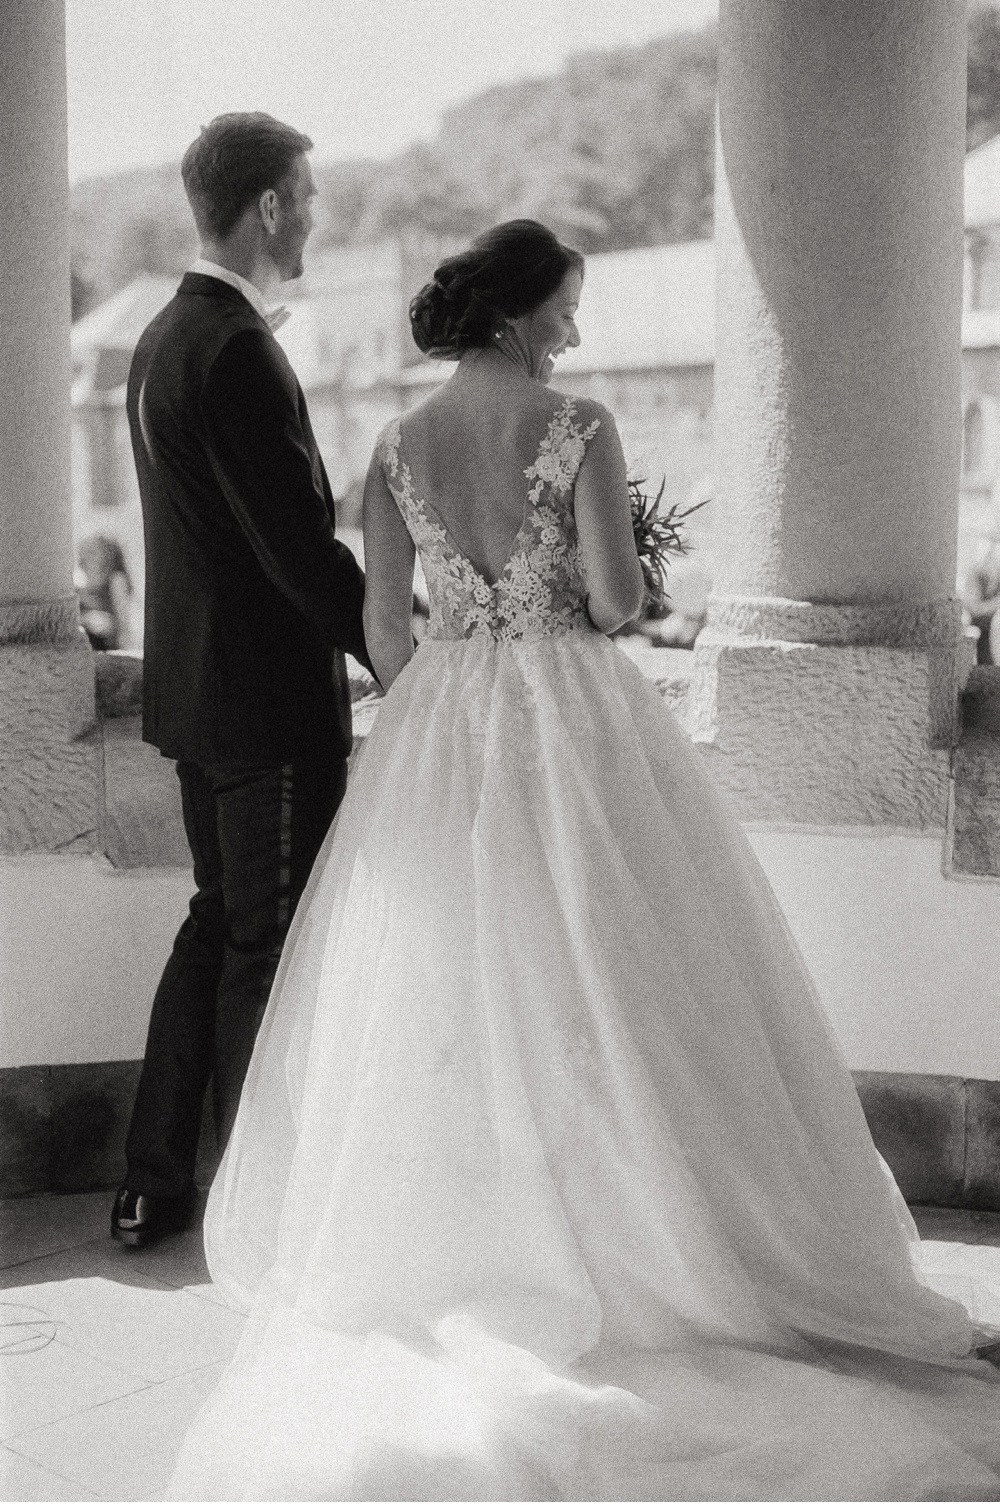 Paris_Provence_Wedding_Photographer©MadalinaSheldon_0023.jpg